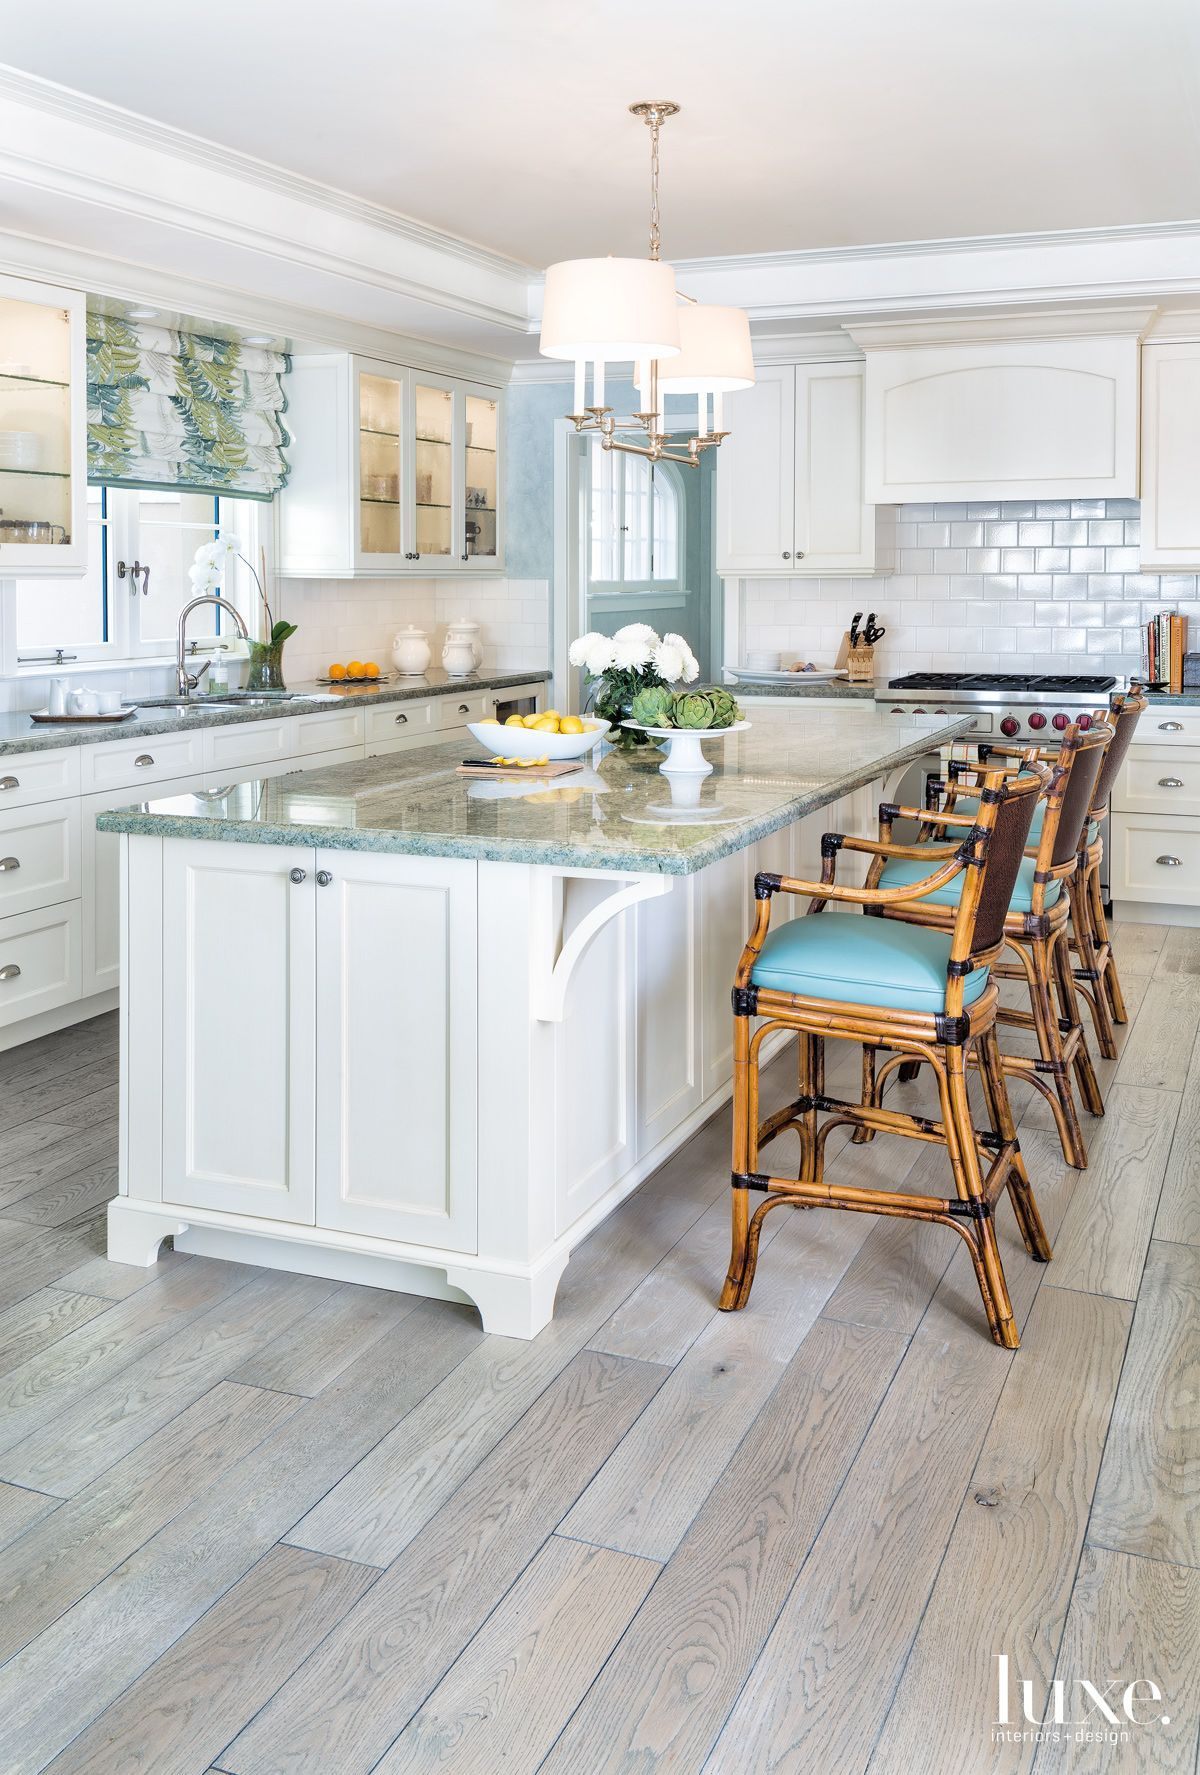 Kitchen Room Interior Design: Allison Paladino Interior Design